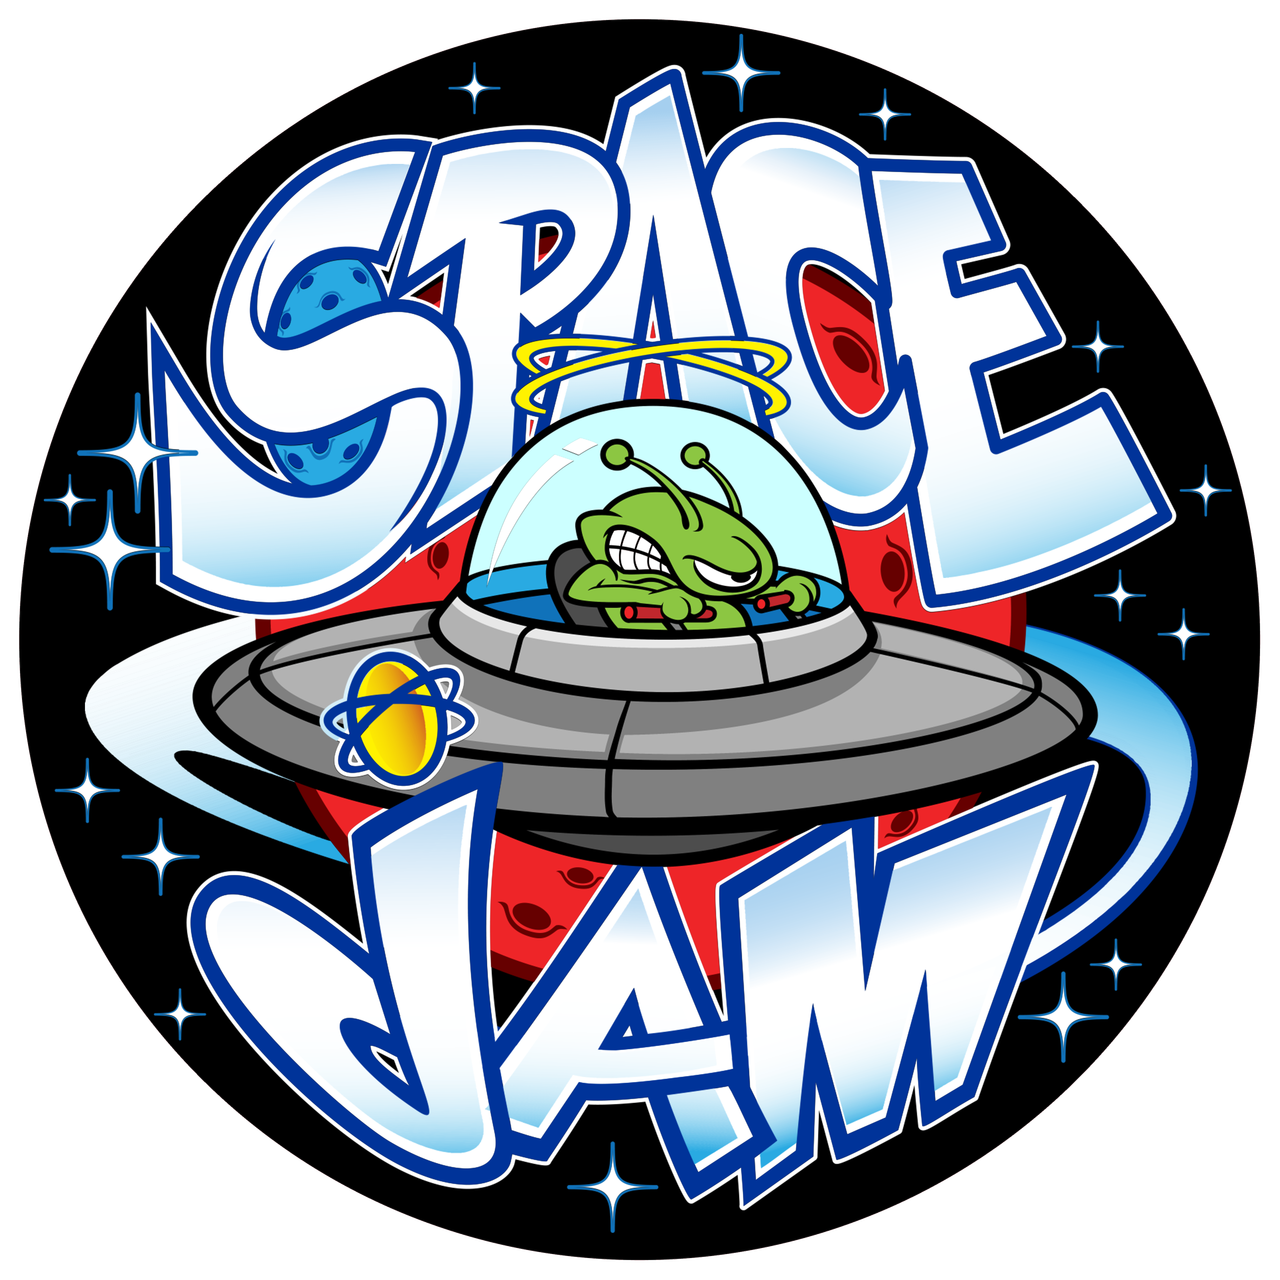 Space jam png. Drakes vape and taste